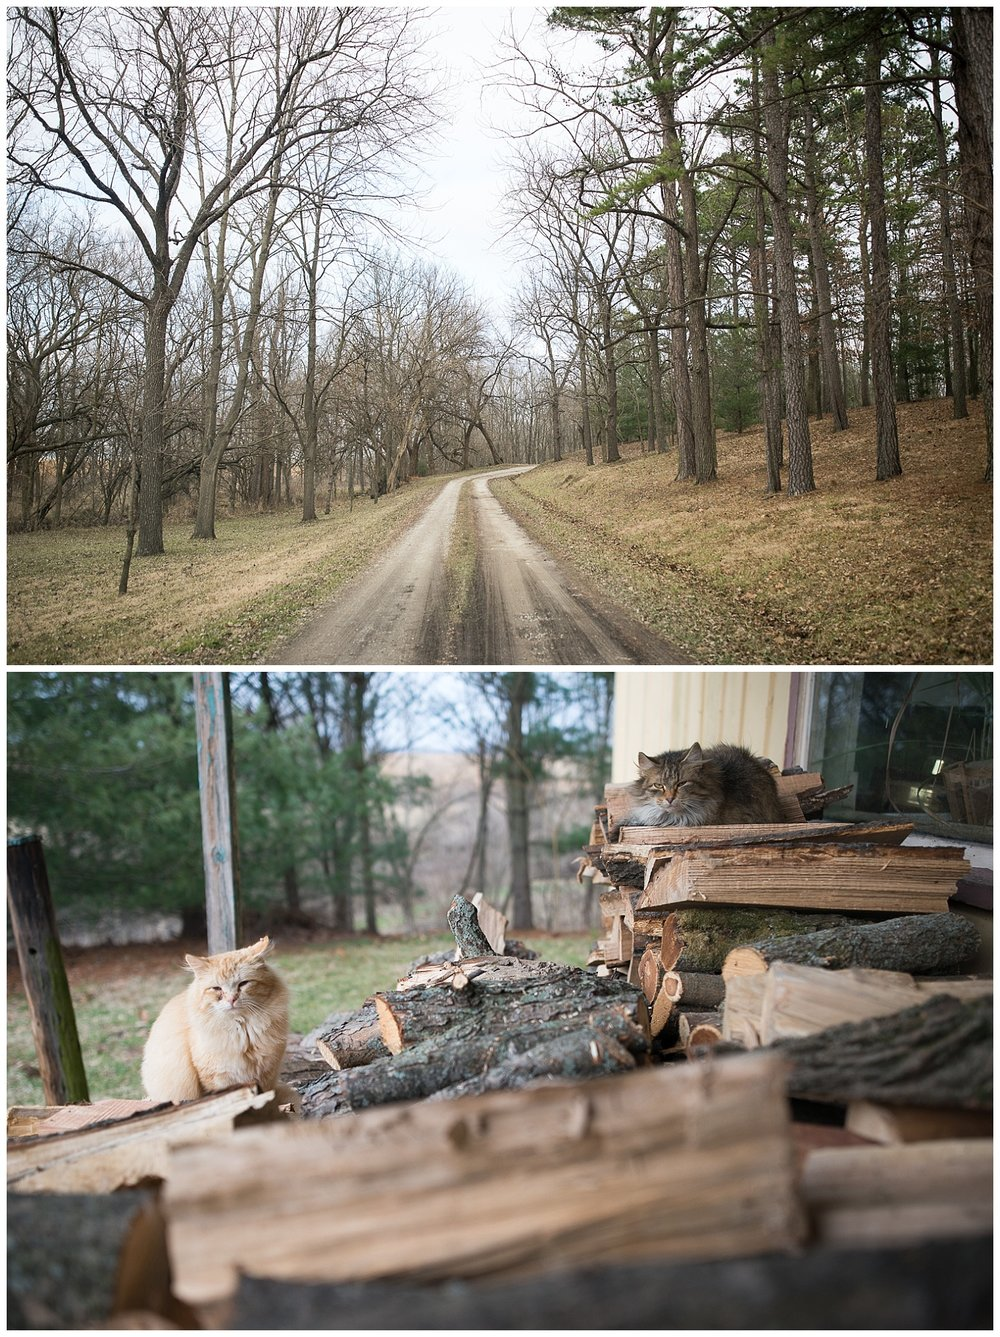 The lane leading to the Gould compound.  I bet it's lovely in the spring when the grass turns green.  Cats hanging out on the wood pile outside of the woodshop.